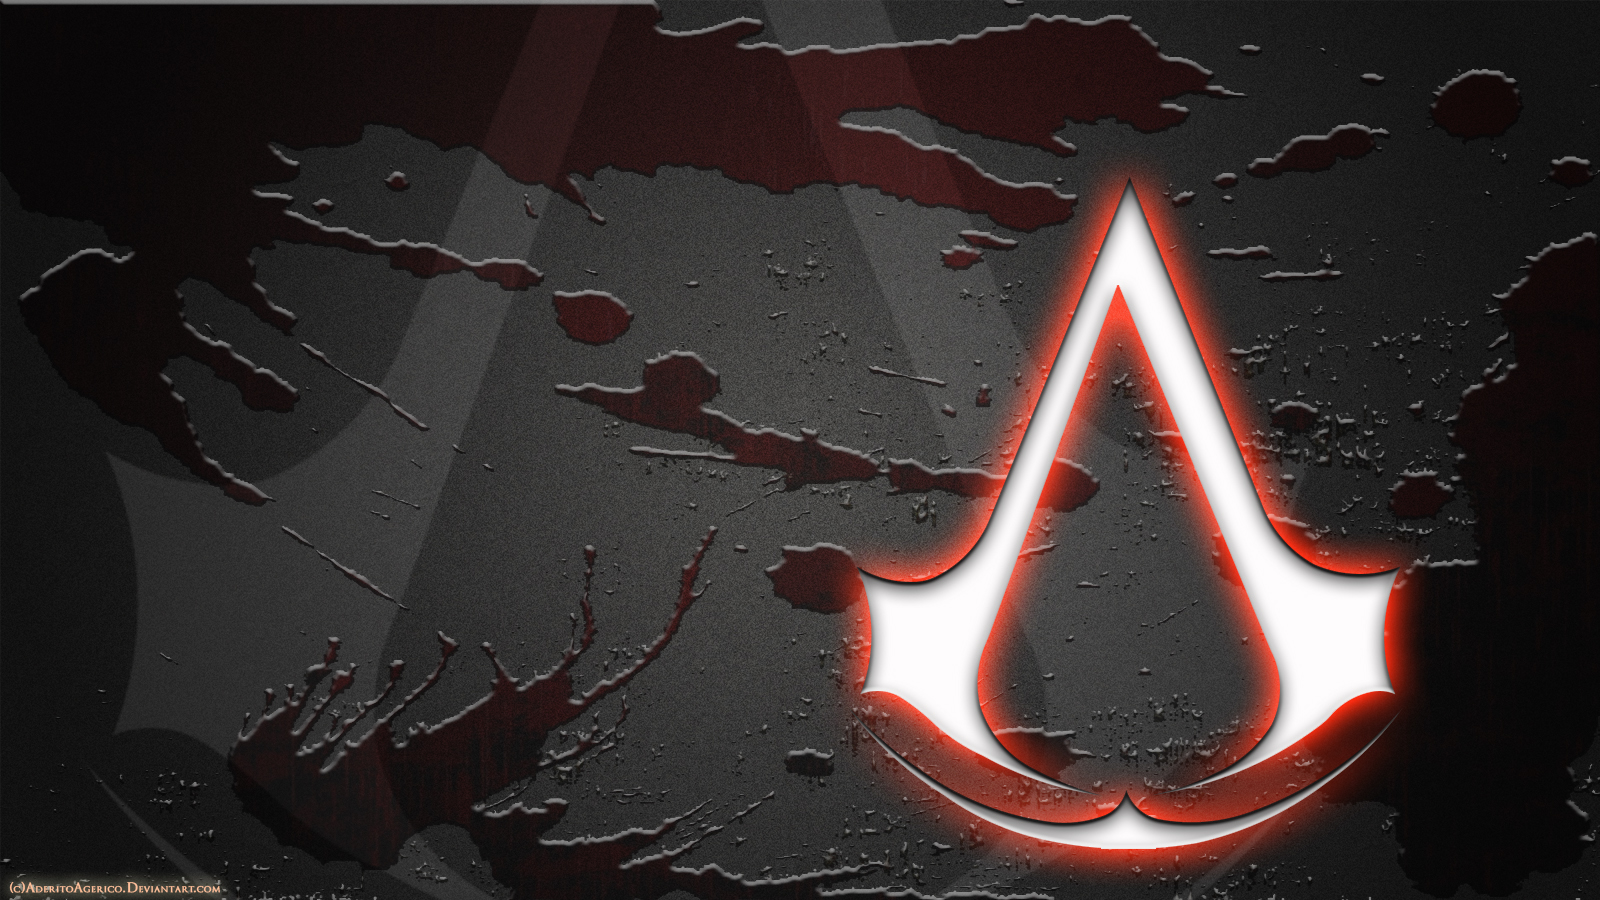 Assassins Creed Wallpaper by AderitoAgerico 1600x900